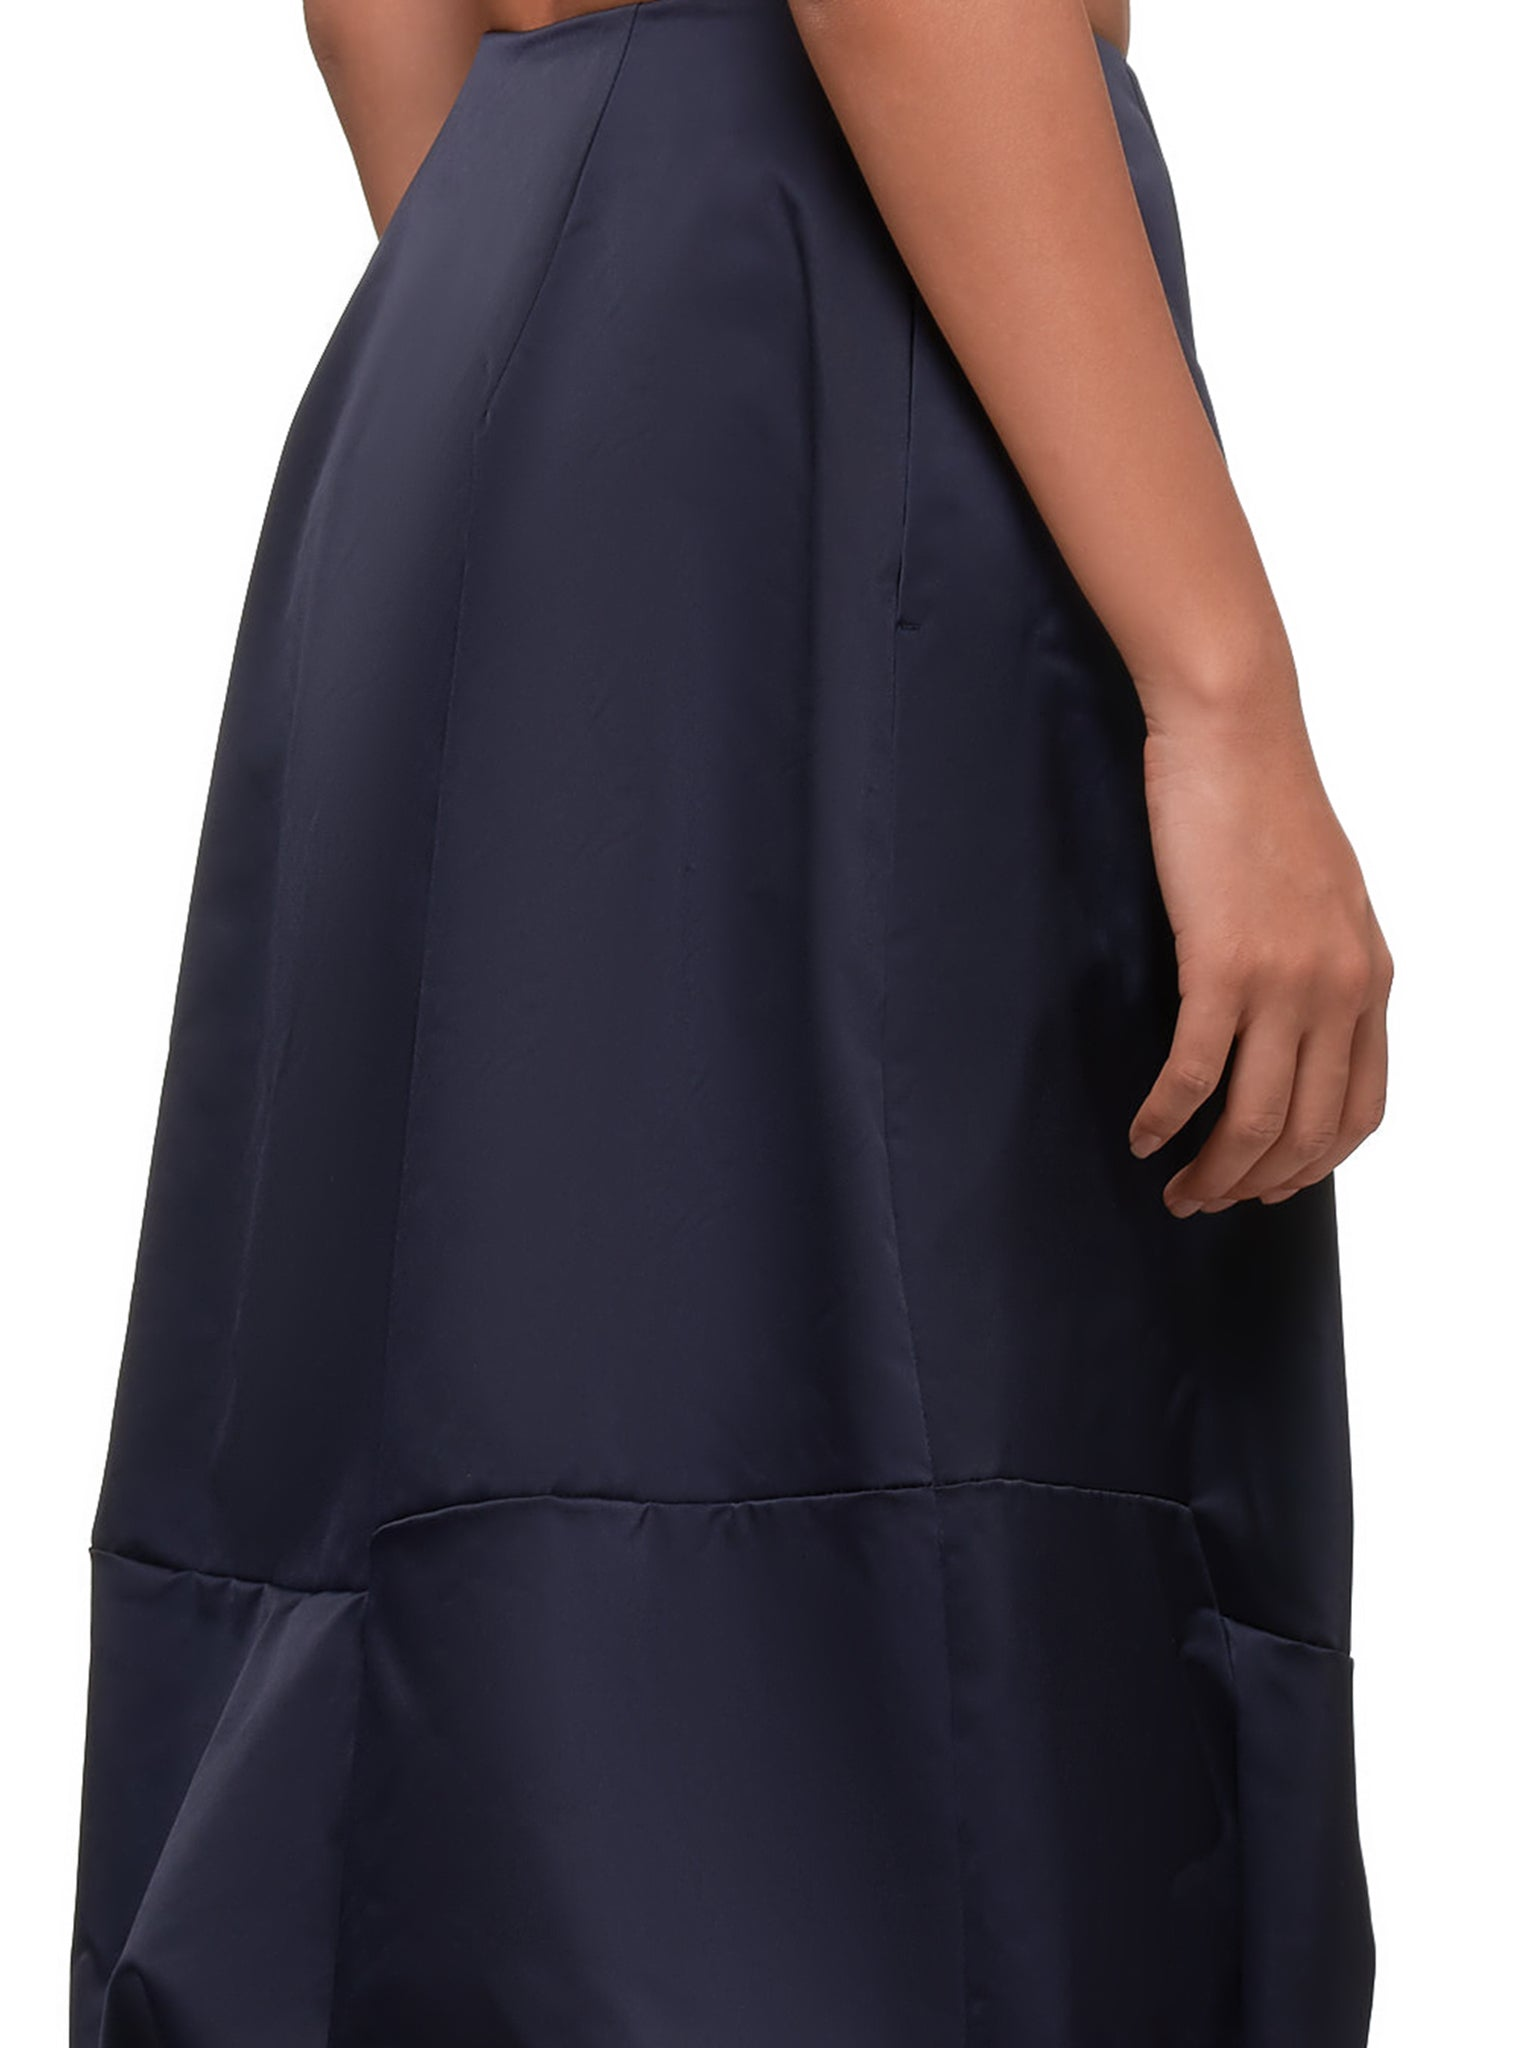 Enfold Skirt - Hlorenzo Detail 2